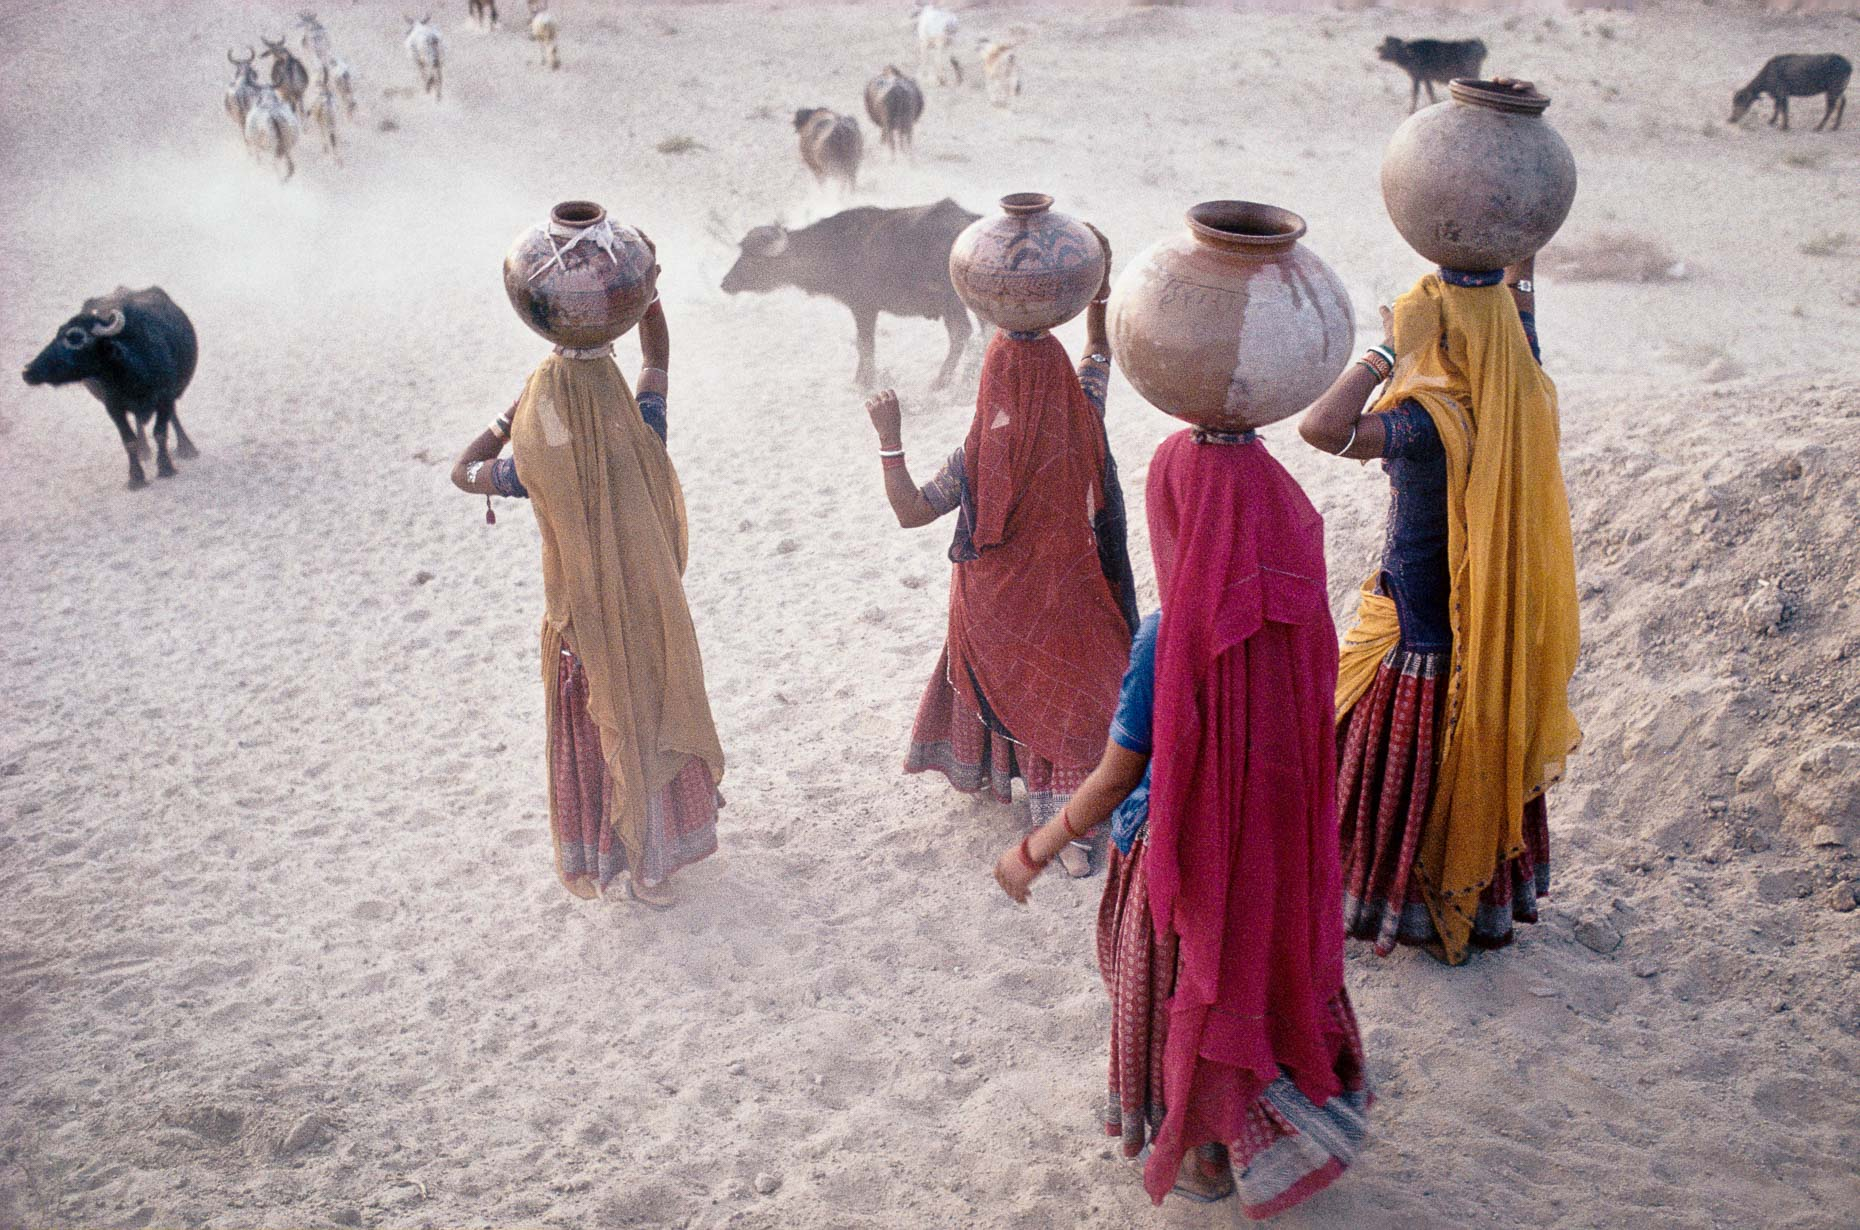 Women Collecting Water, No2, Rajasthan - India